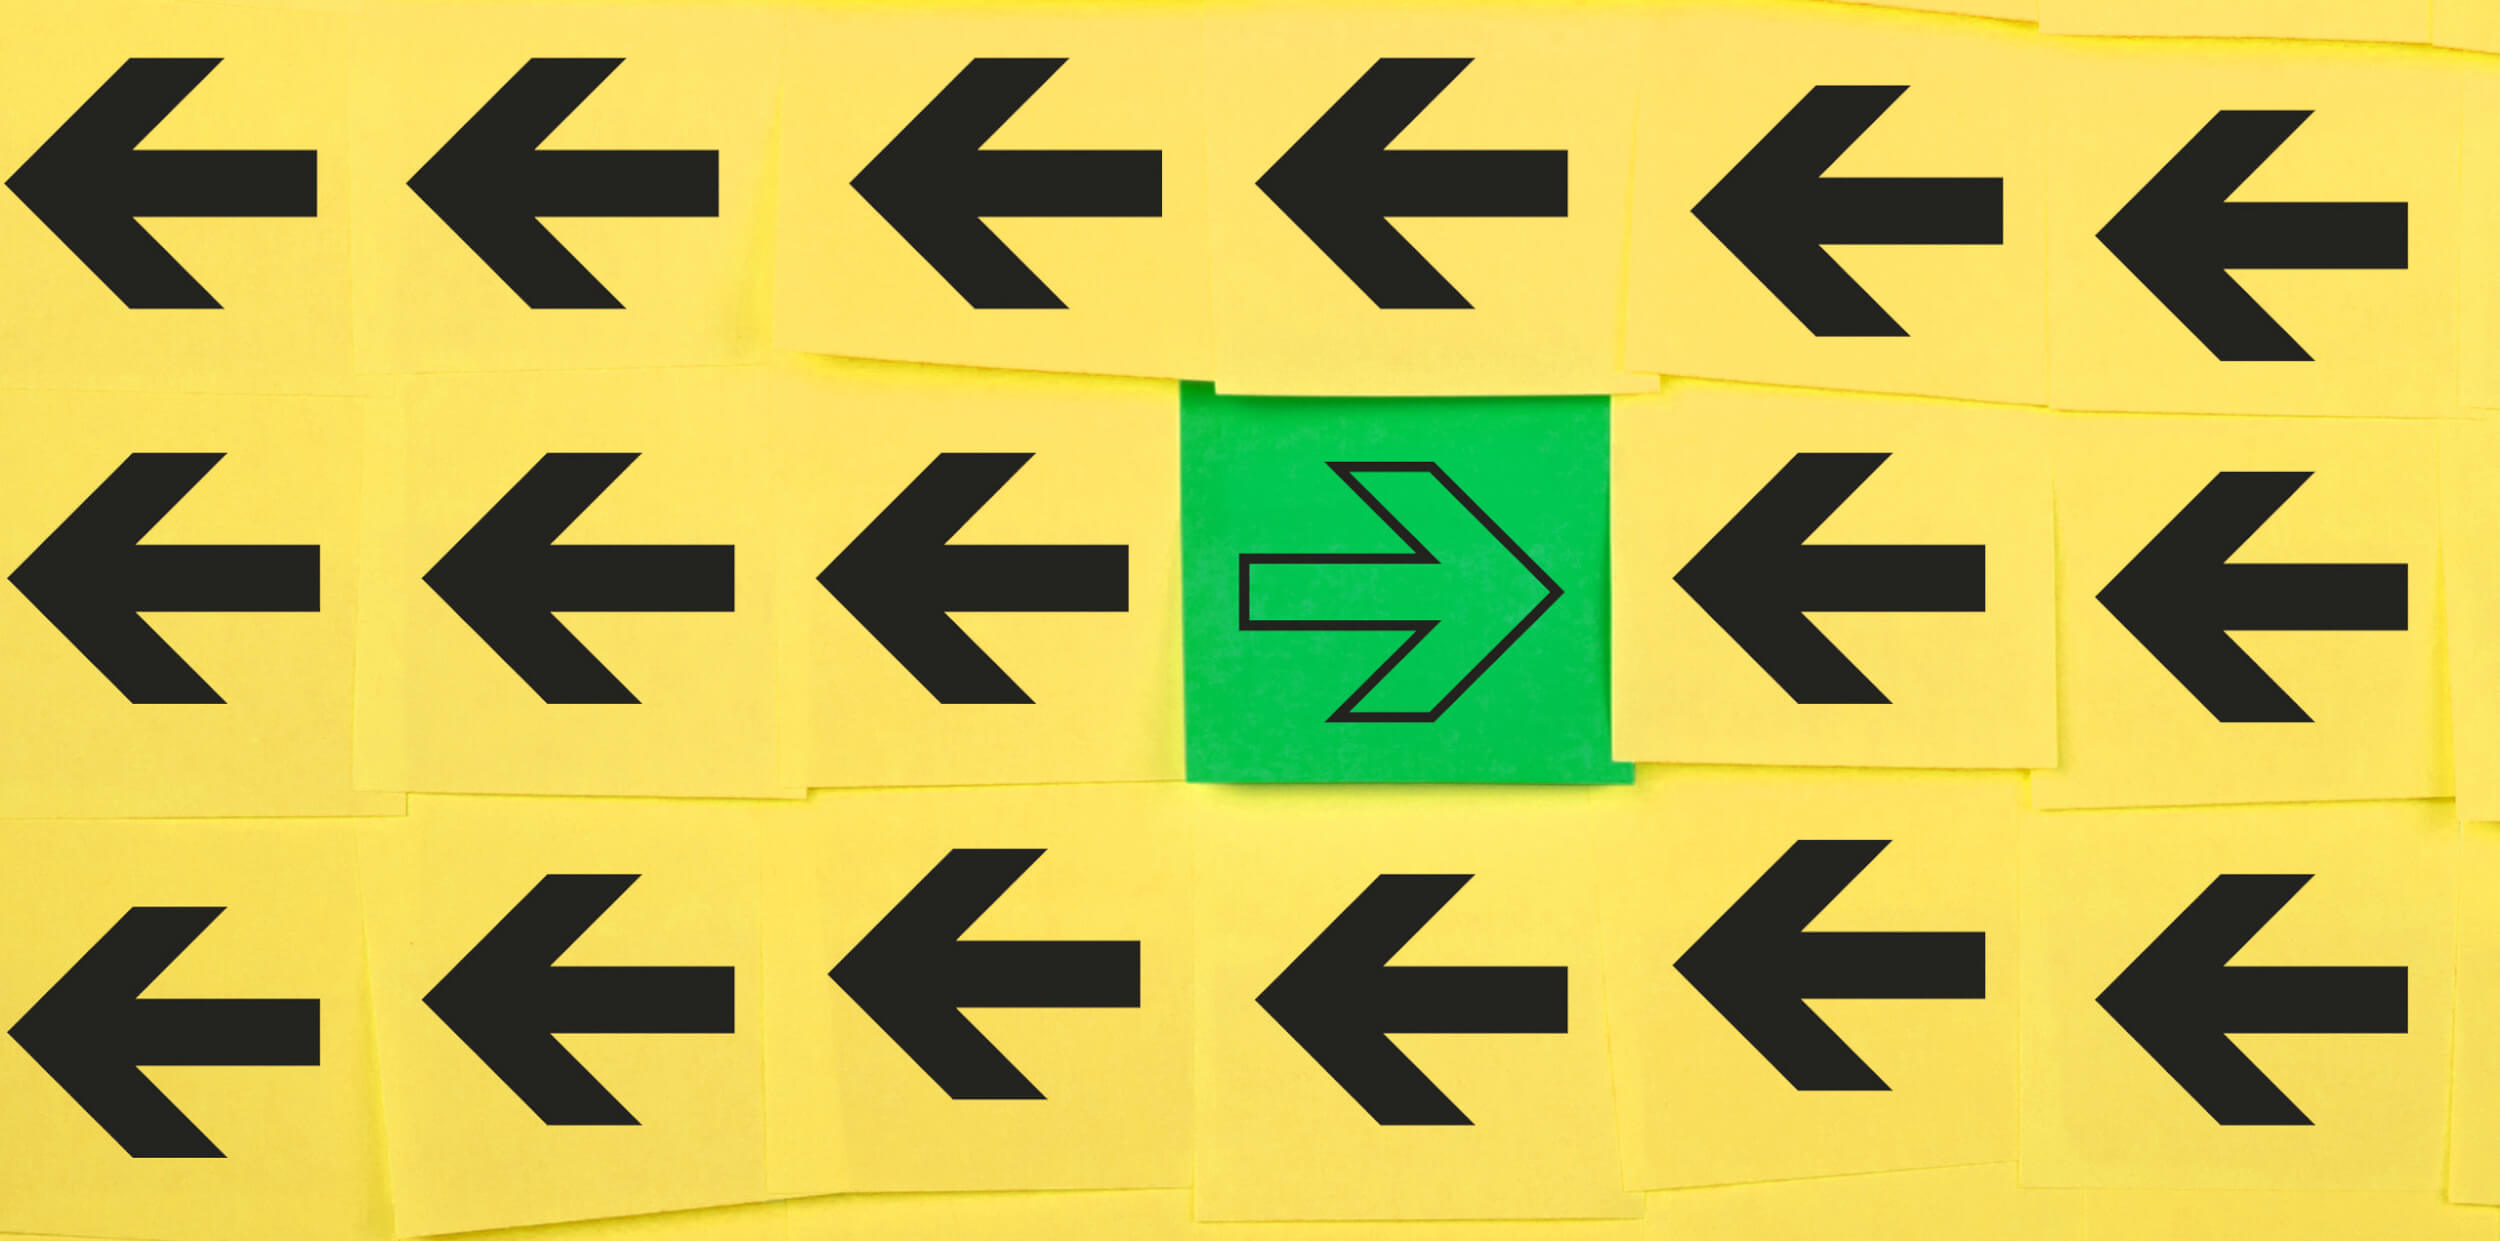 Resistance into readiness - arrows facing the opposite direction